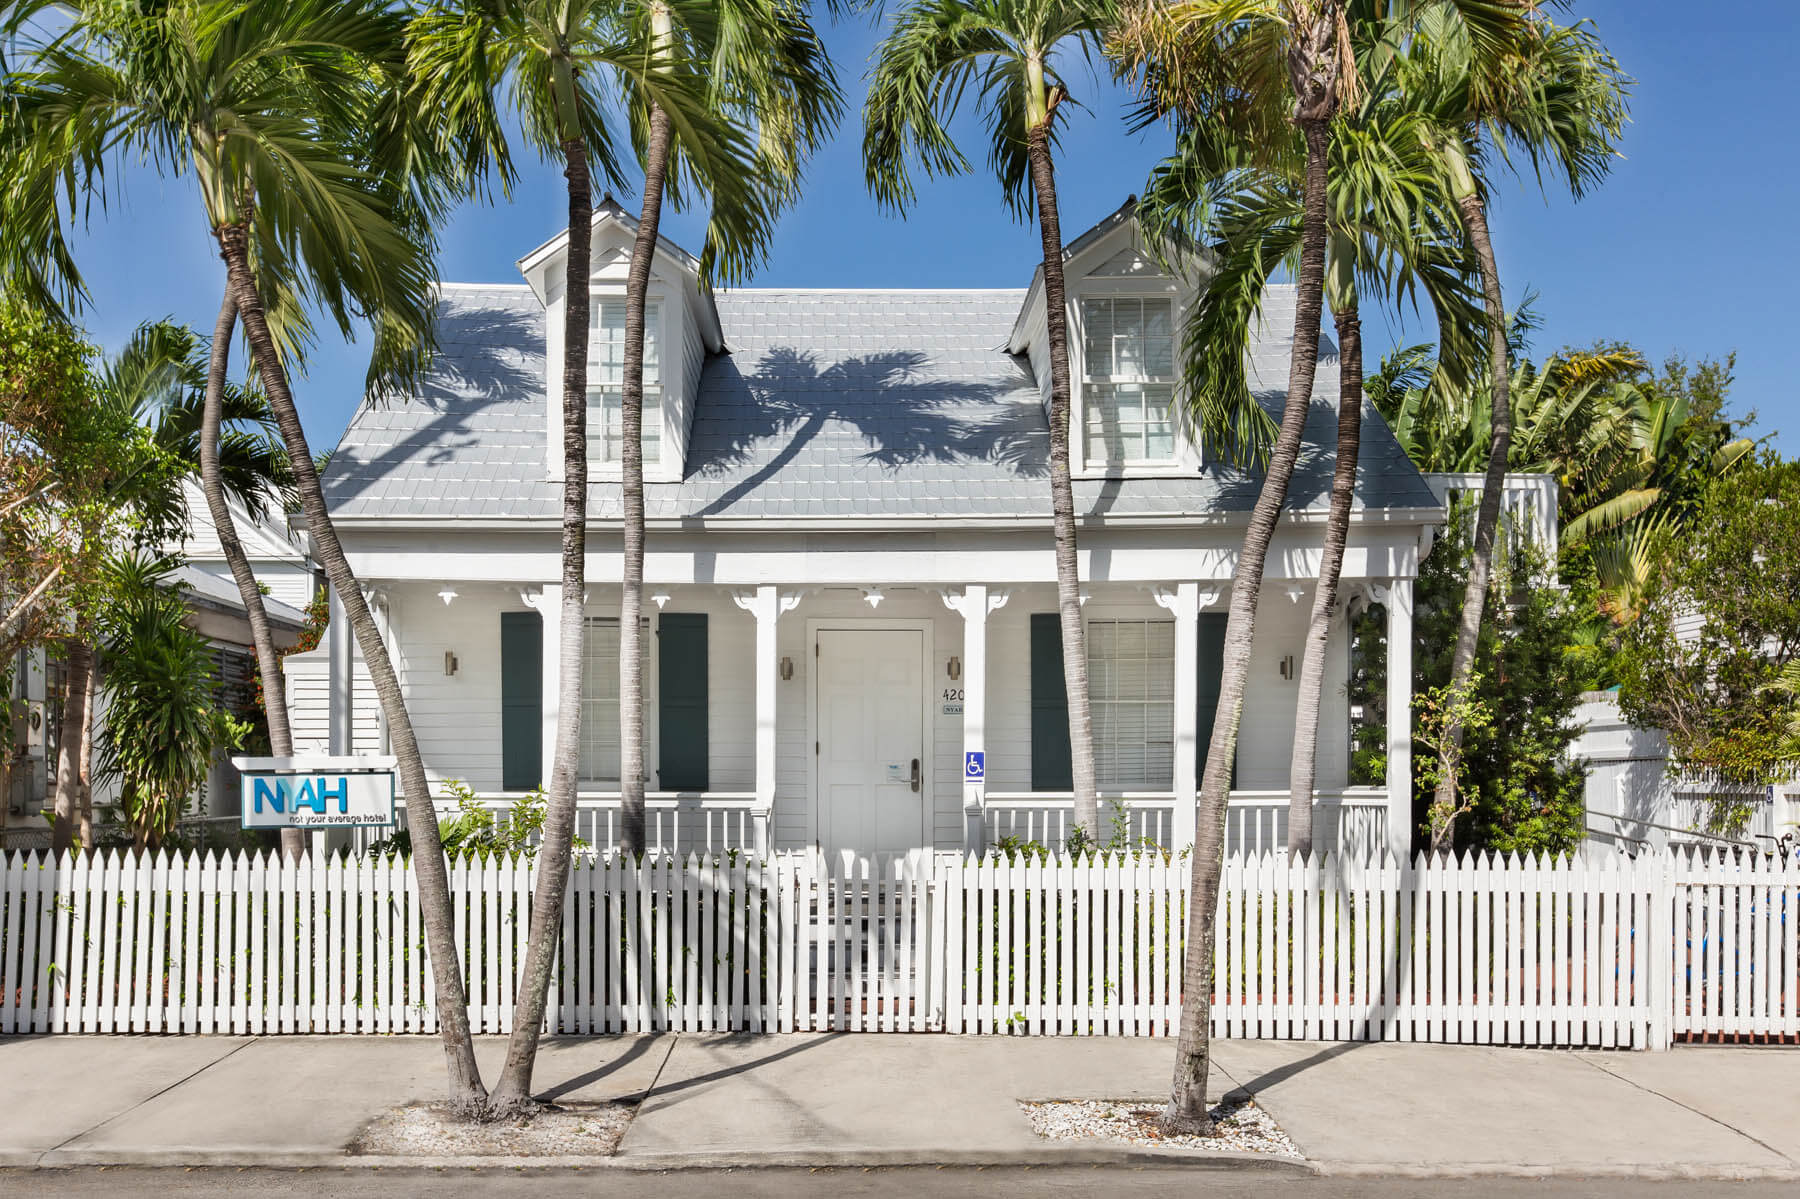 An image of a Key West hotel near Jeep rental services.